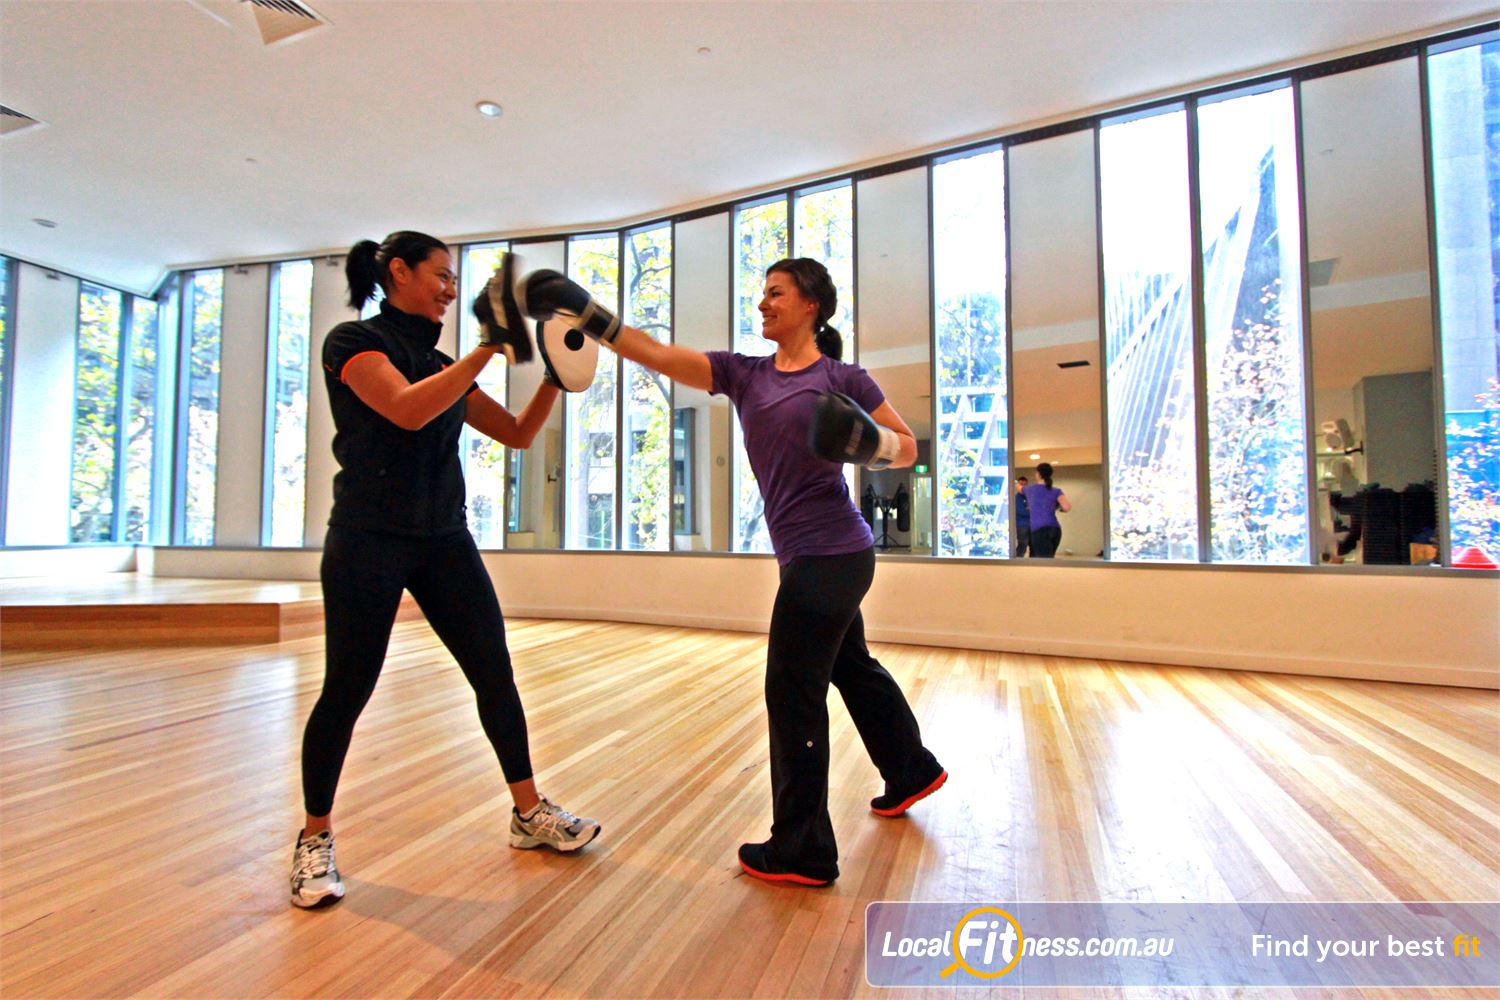 South Pacific Health Clubs Near South Melbourne Burn calories with energetic boxing sessions with your personal trainer.